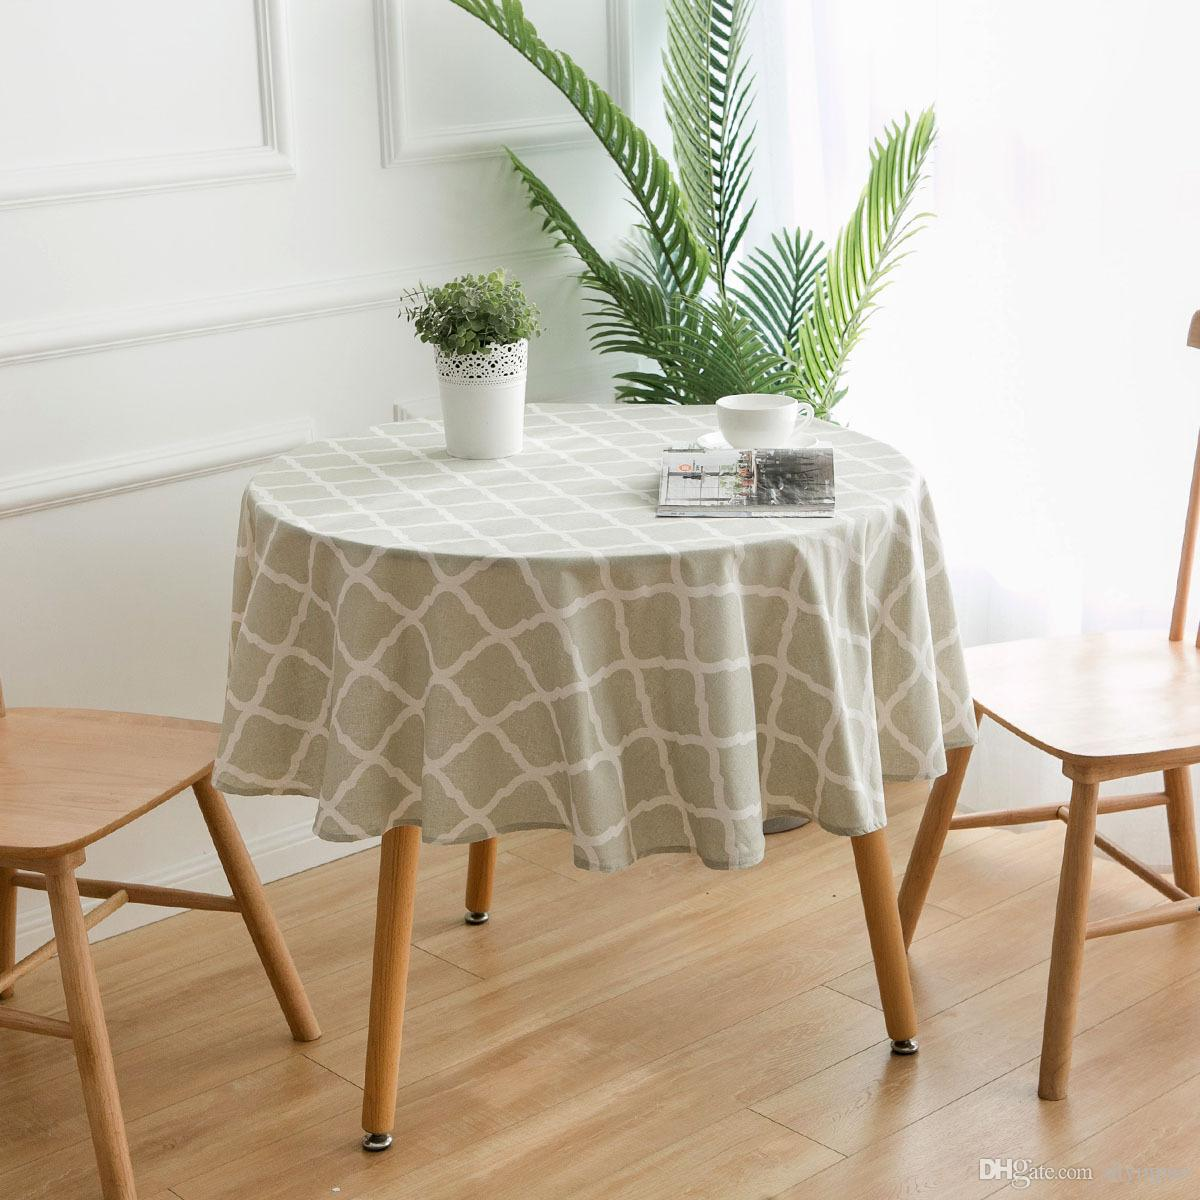 Small Round Table Cloths.Tablecloth Geometric Diamond Round Tablecloth Small Table Cloth Coffee Table Cloth Cotton And Linen Printing Free Shipping